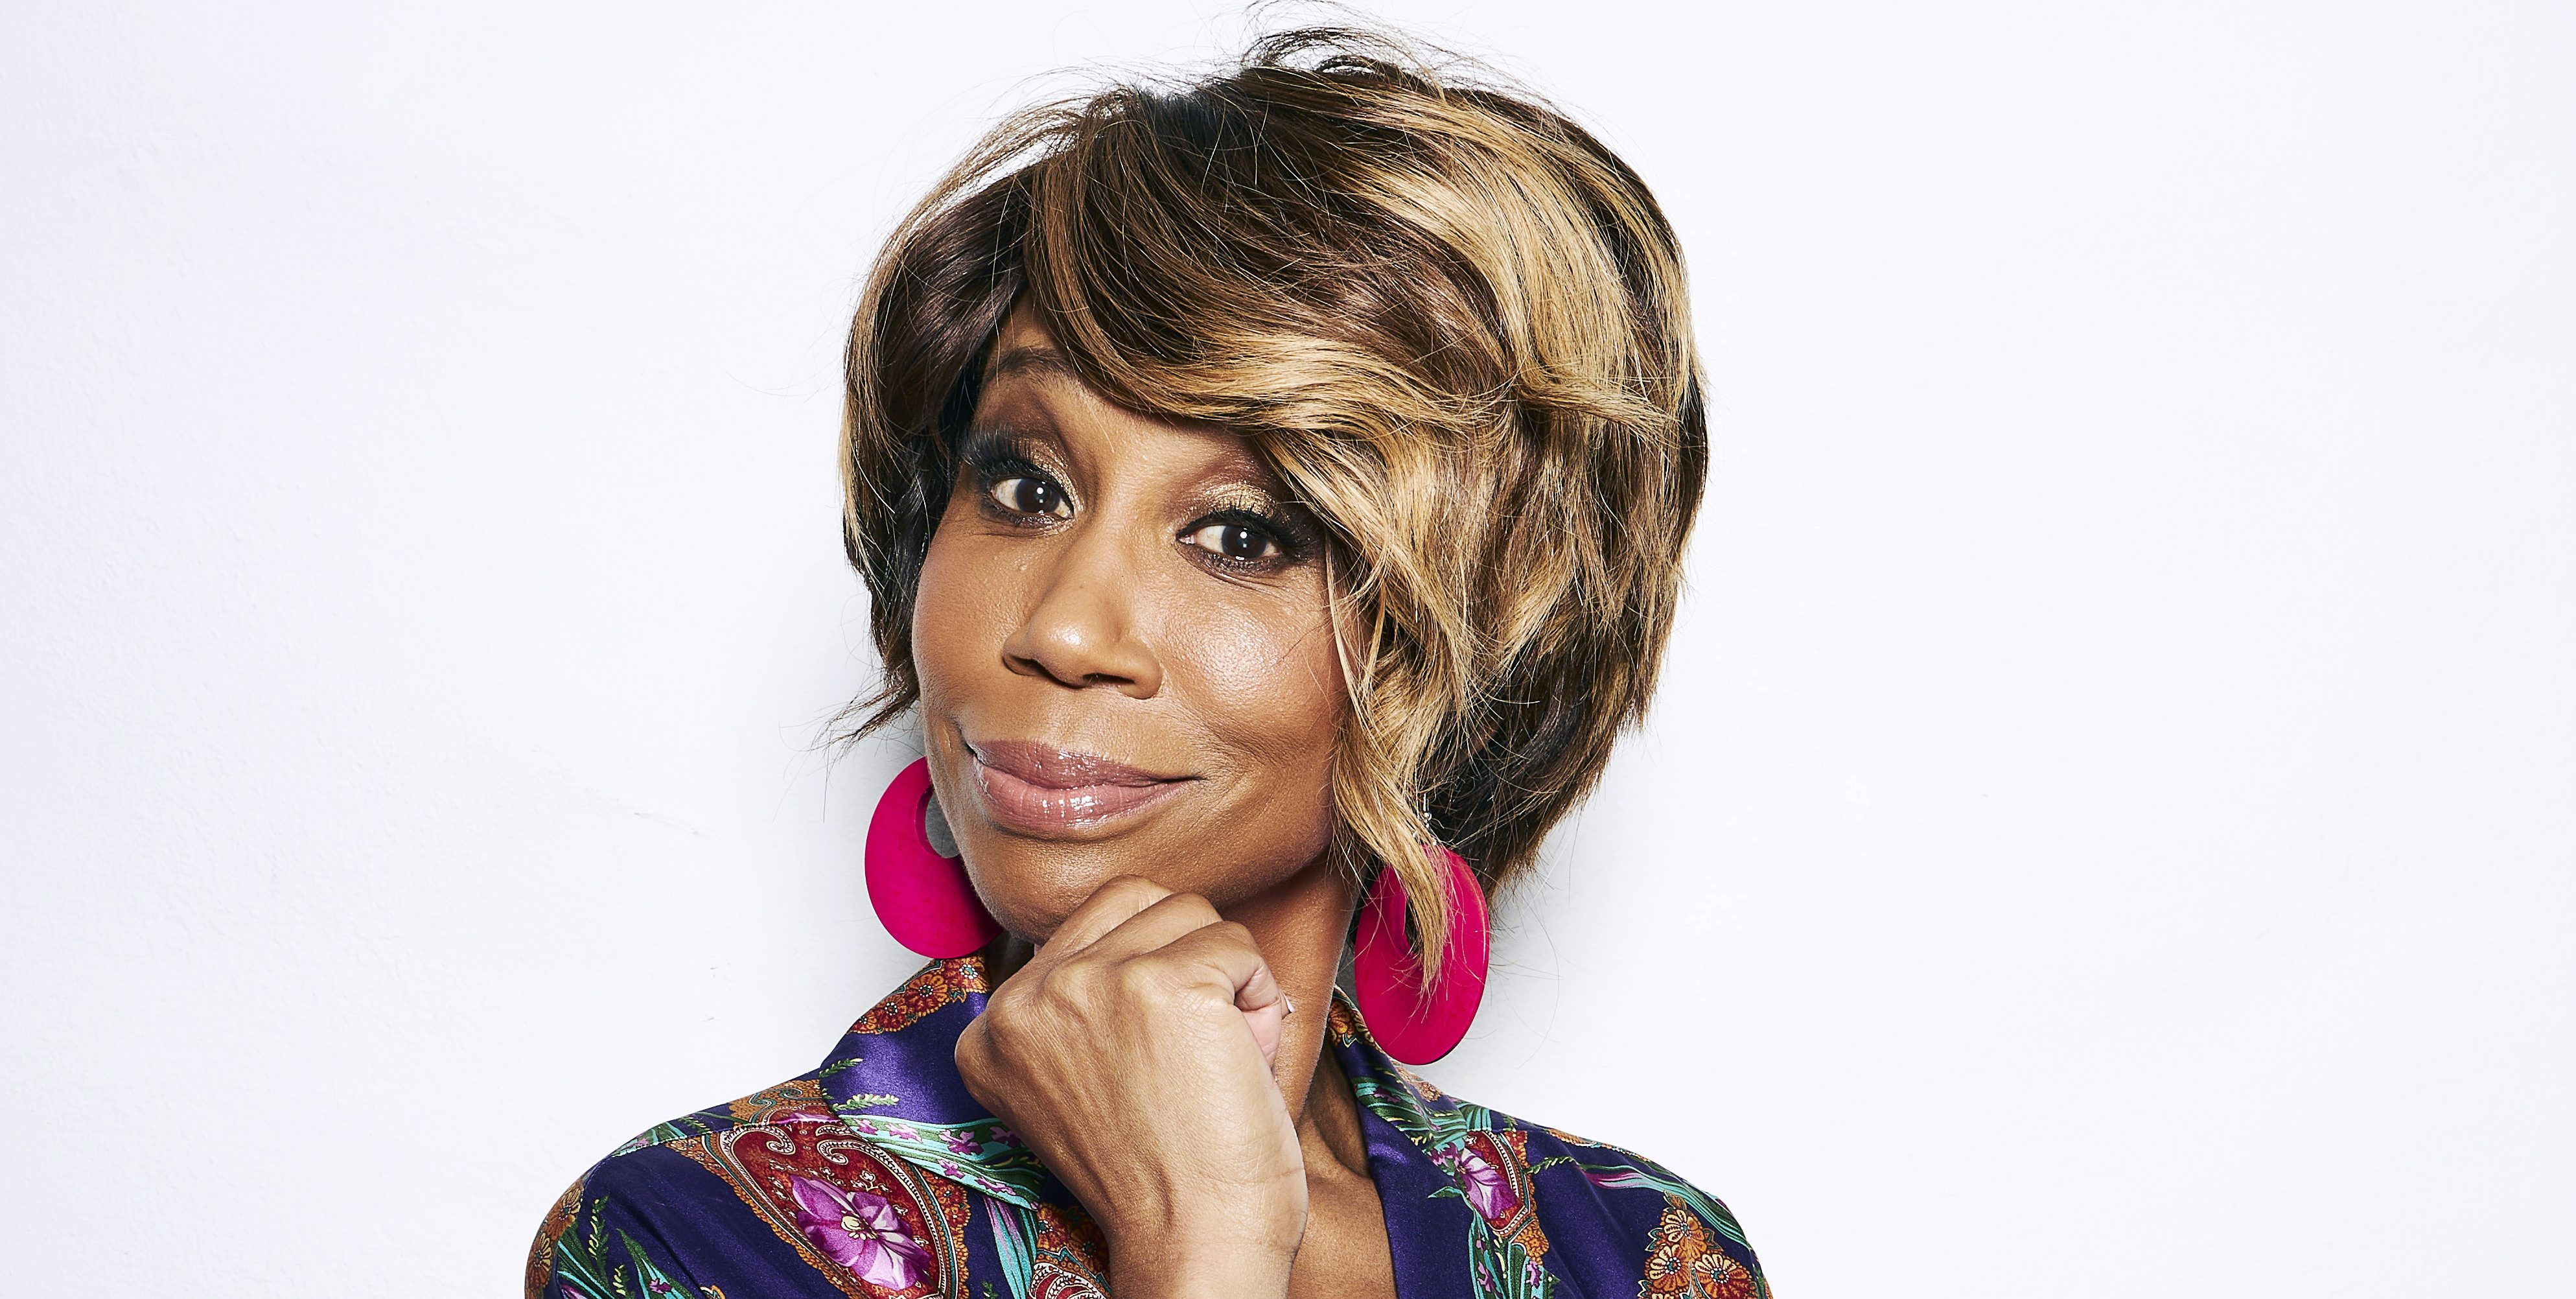 Trisha Goddard hits back at cancer criticism over Dancing on Ice appearance